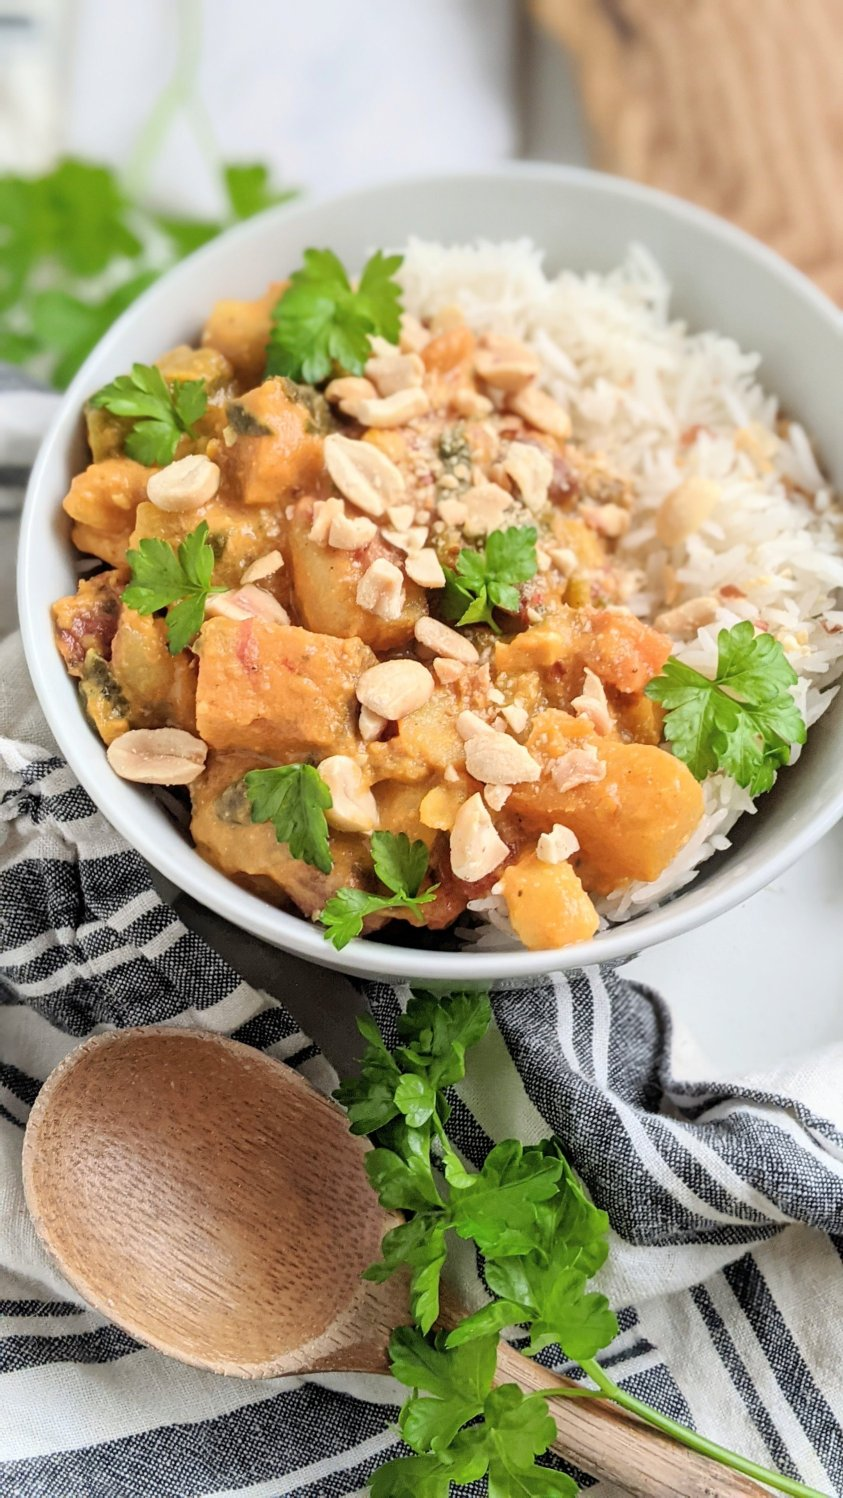 whole30 sweet potato curry recipe peanuts healthy homemade vegan vegetarian gluten free recipes with curry powder indian spices healthy peanut curry coconut milk